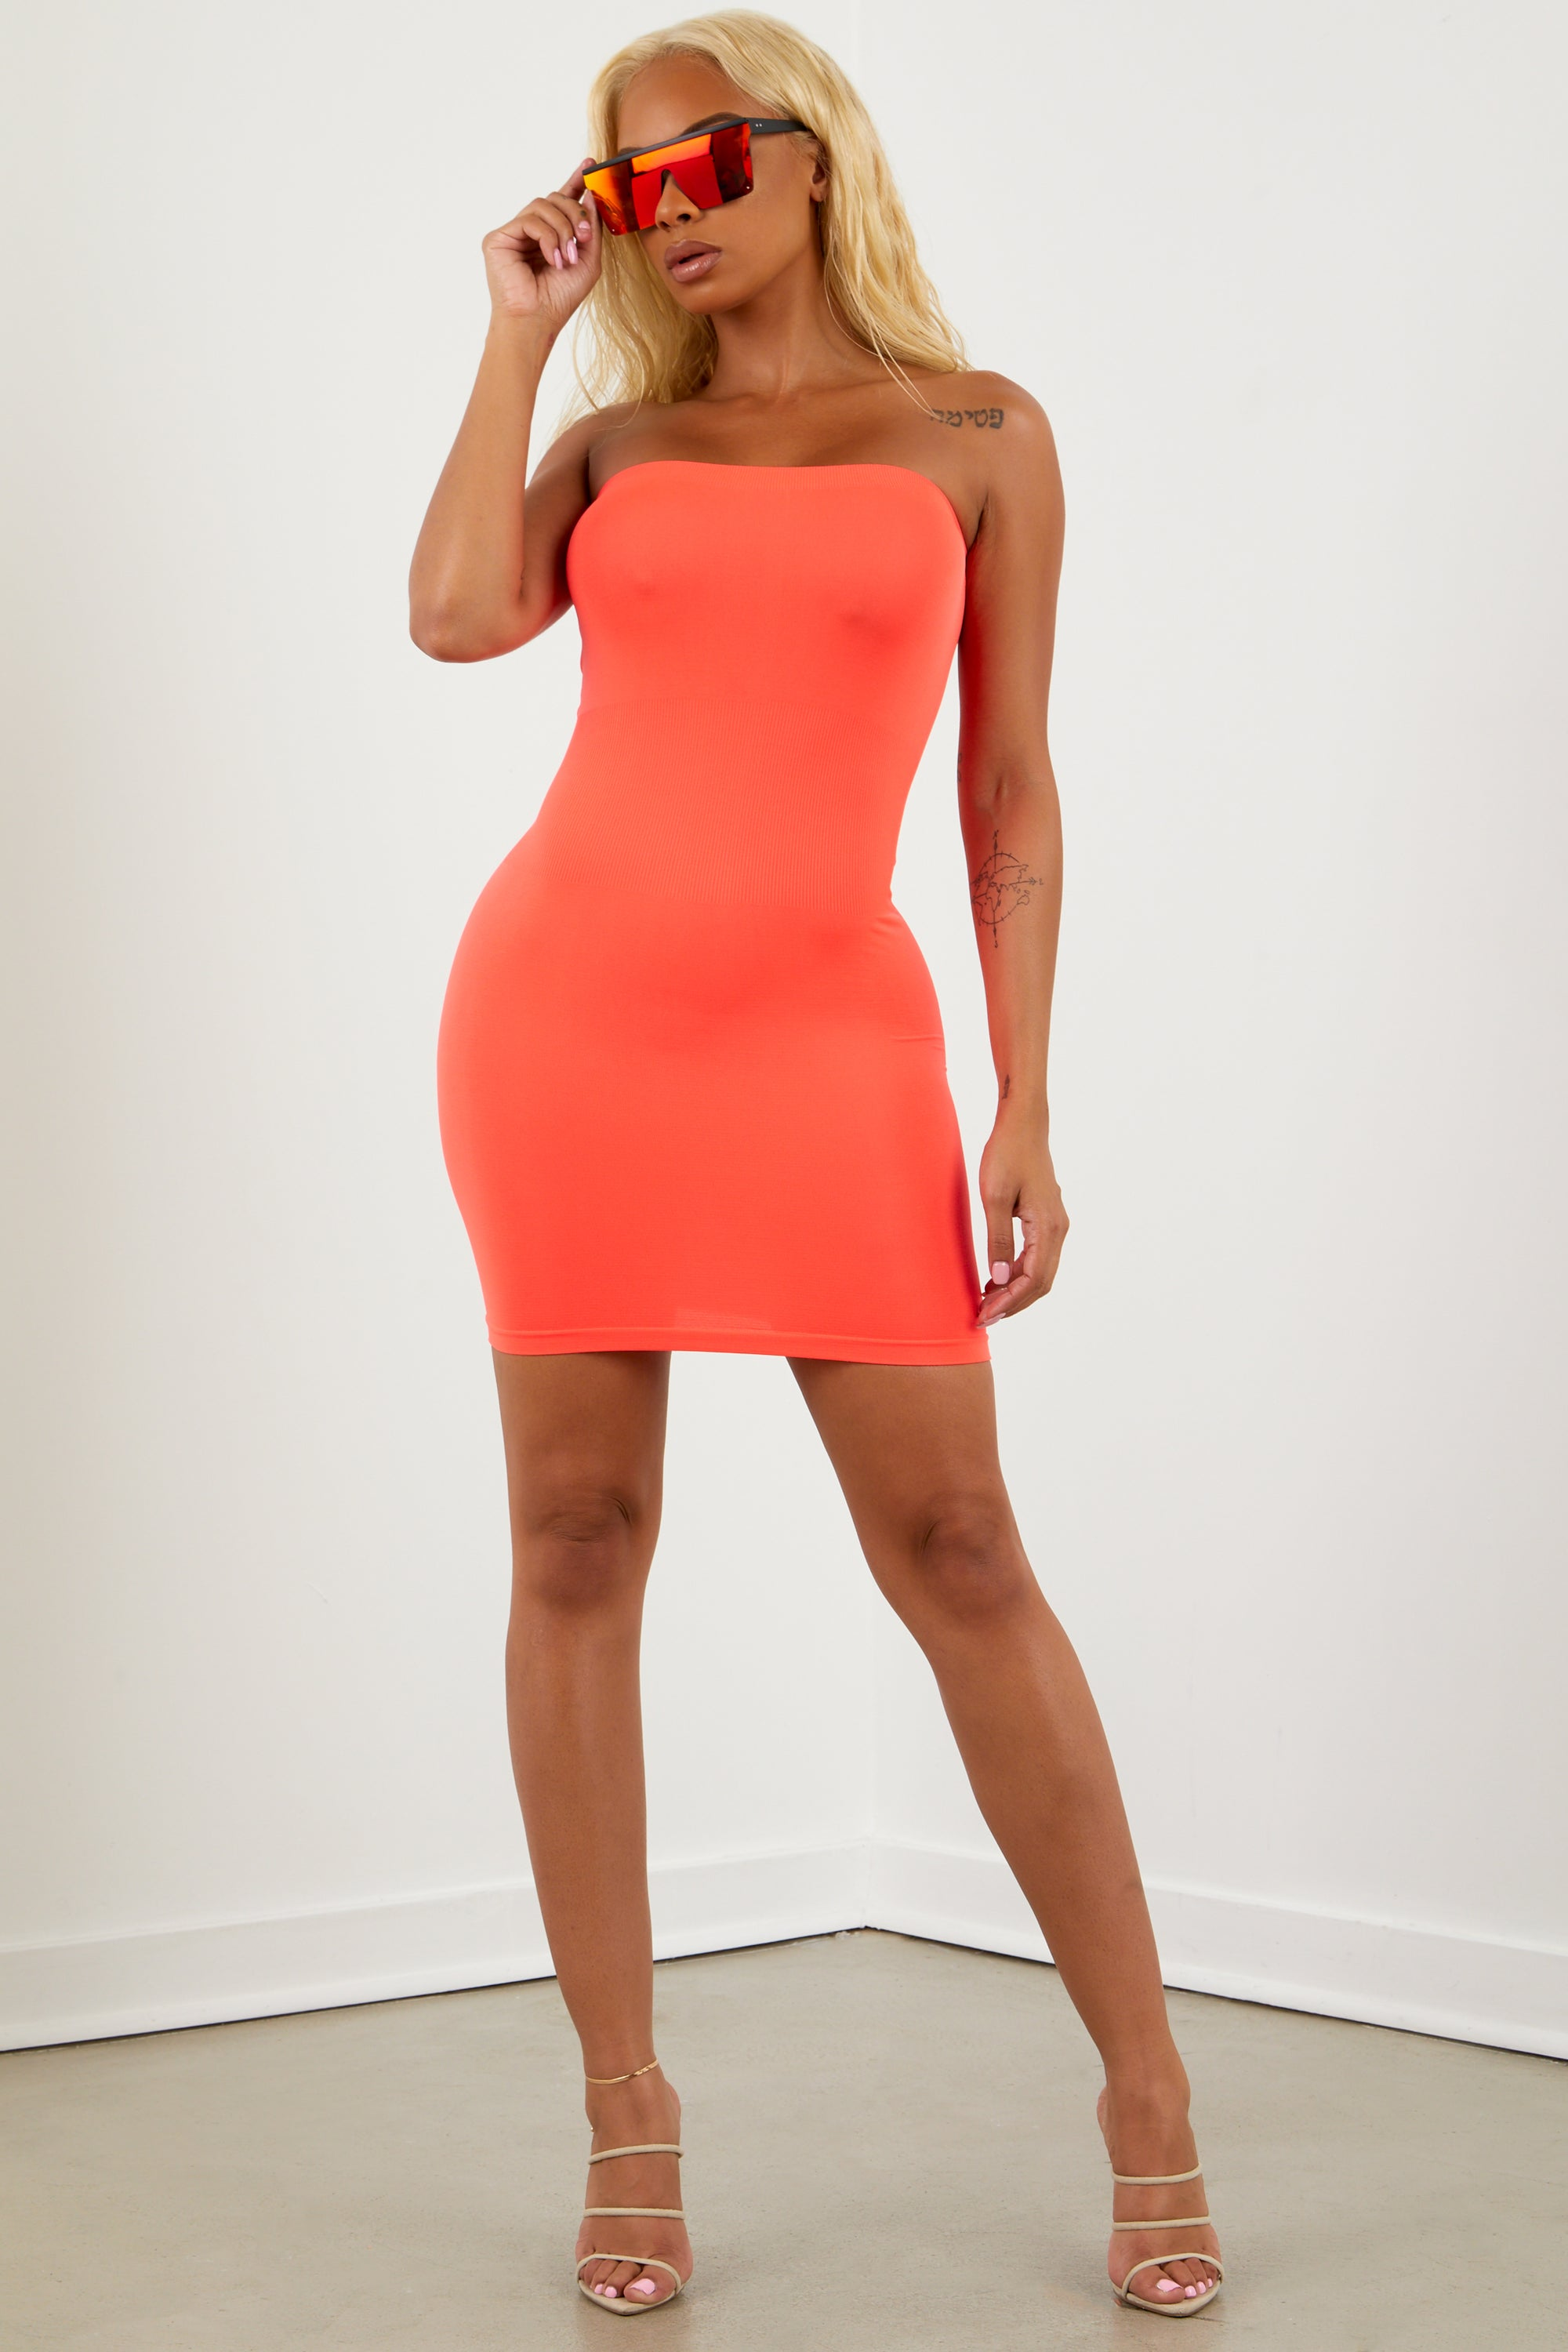 Neon Orange Tube Top Dress